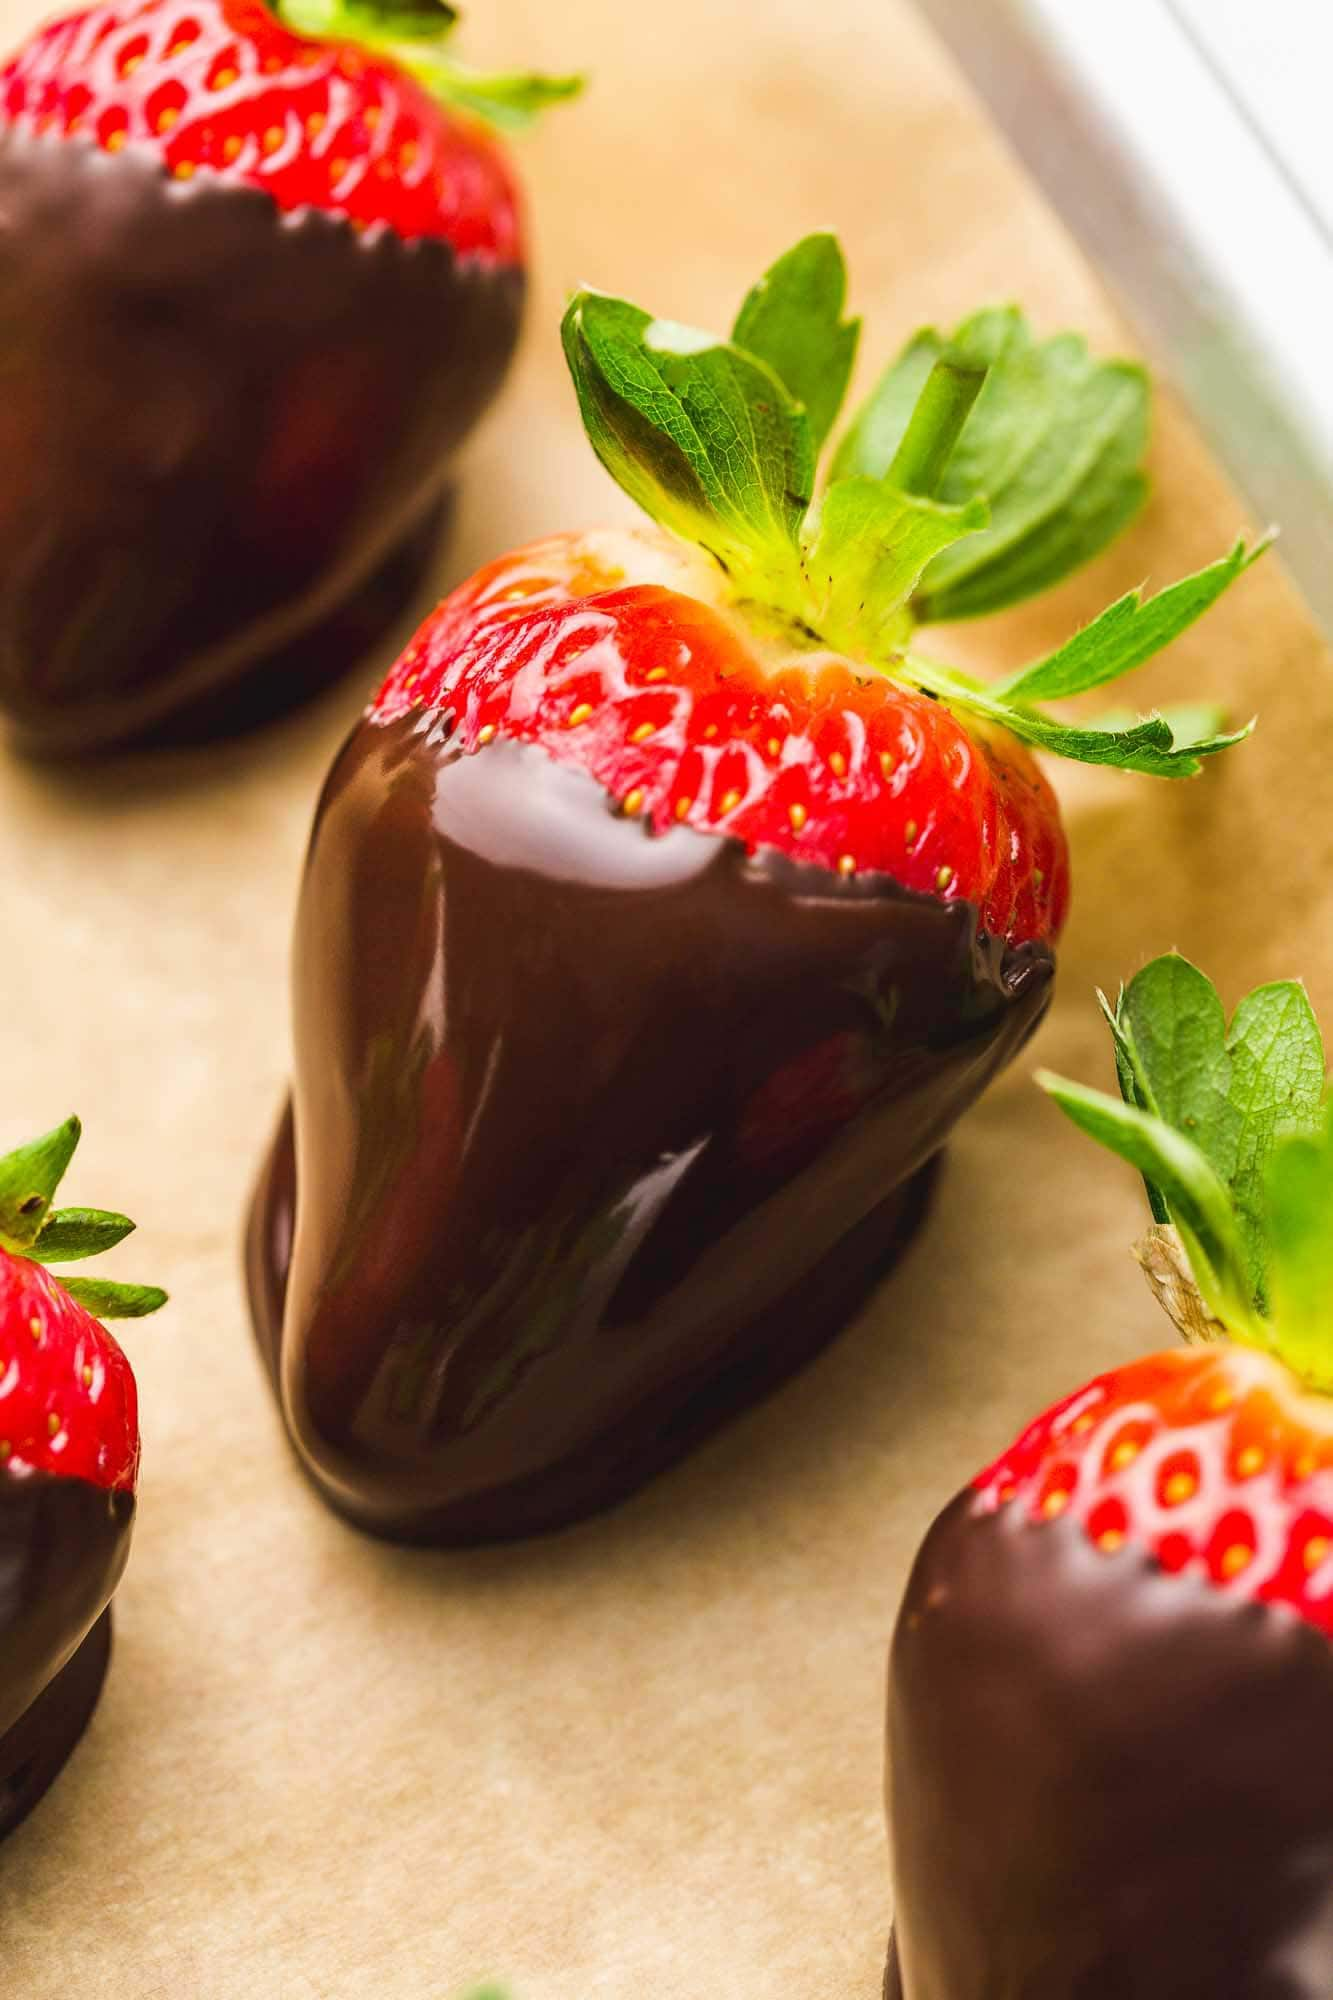 Strawberry dipped in chocolate then placed on parchment lined cookie sheet